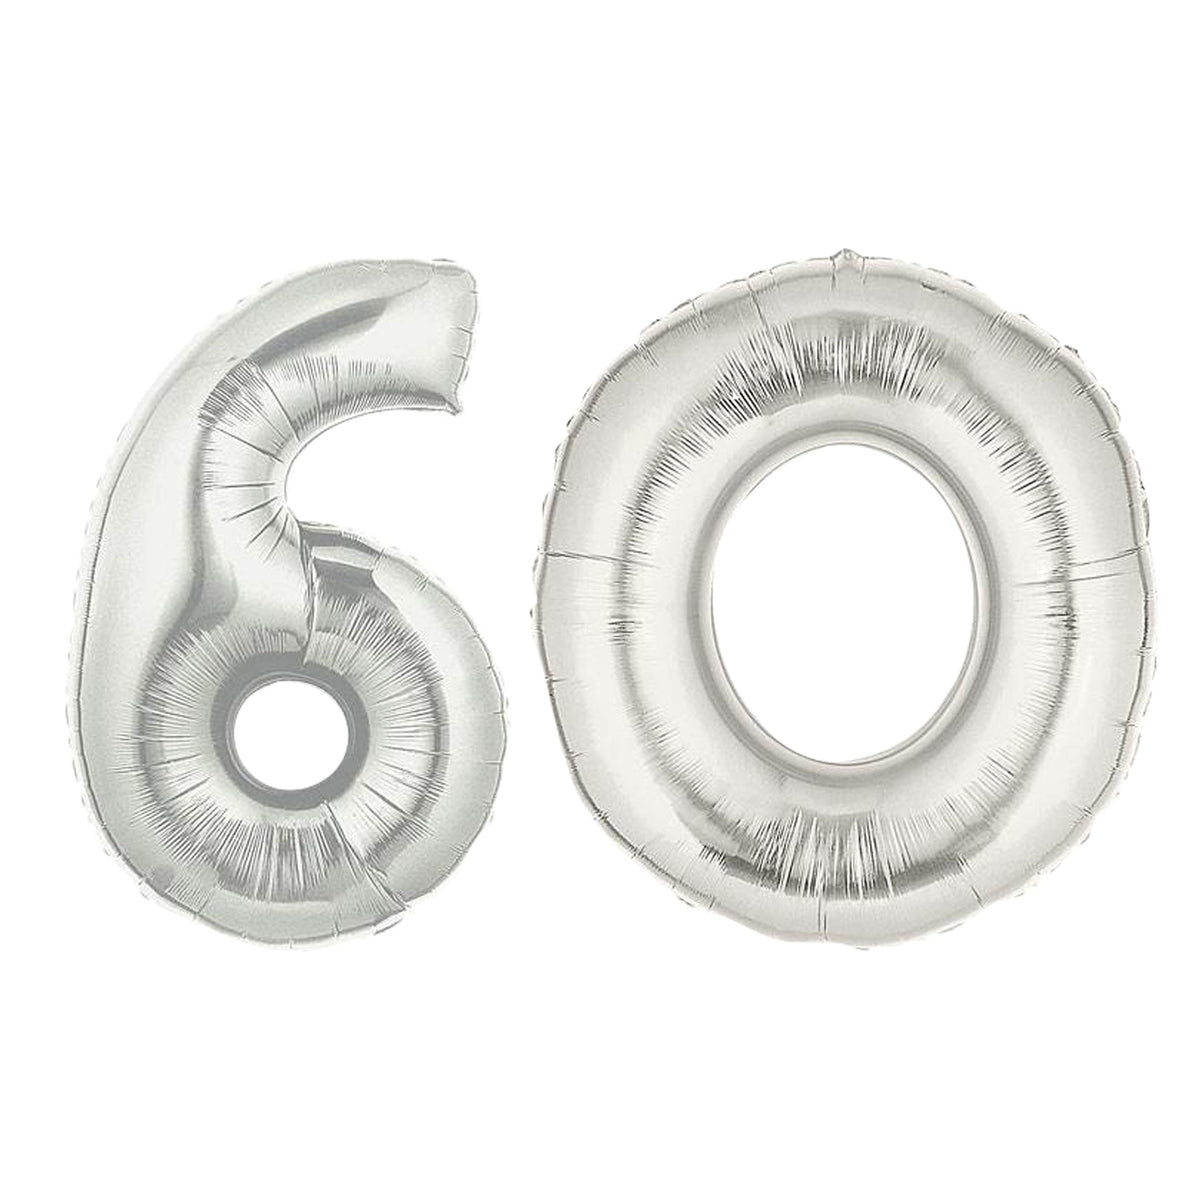 Silver 60 Balloon Number Set